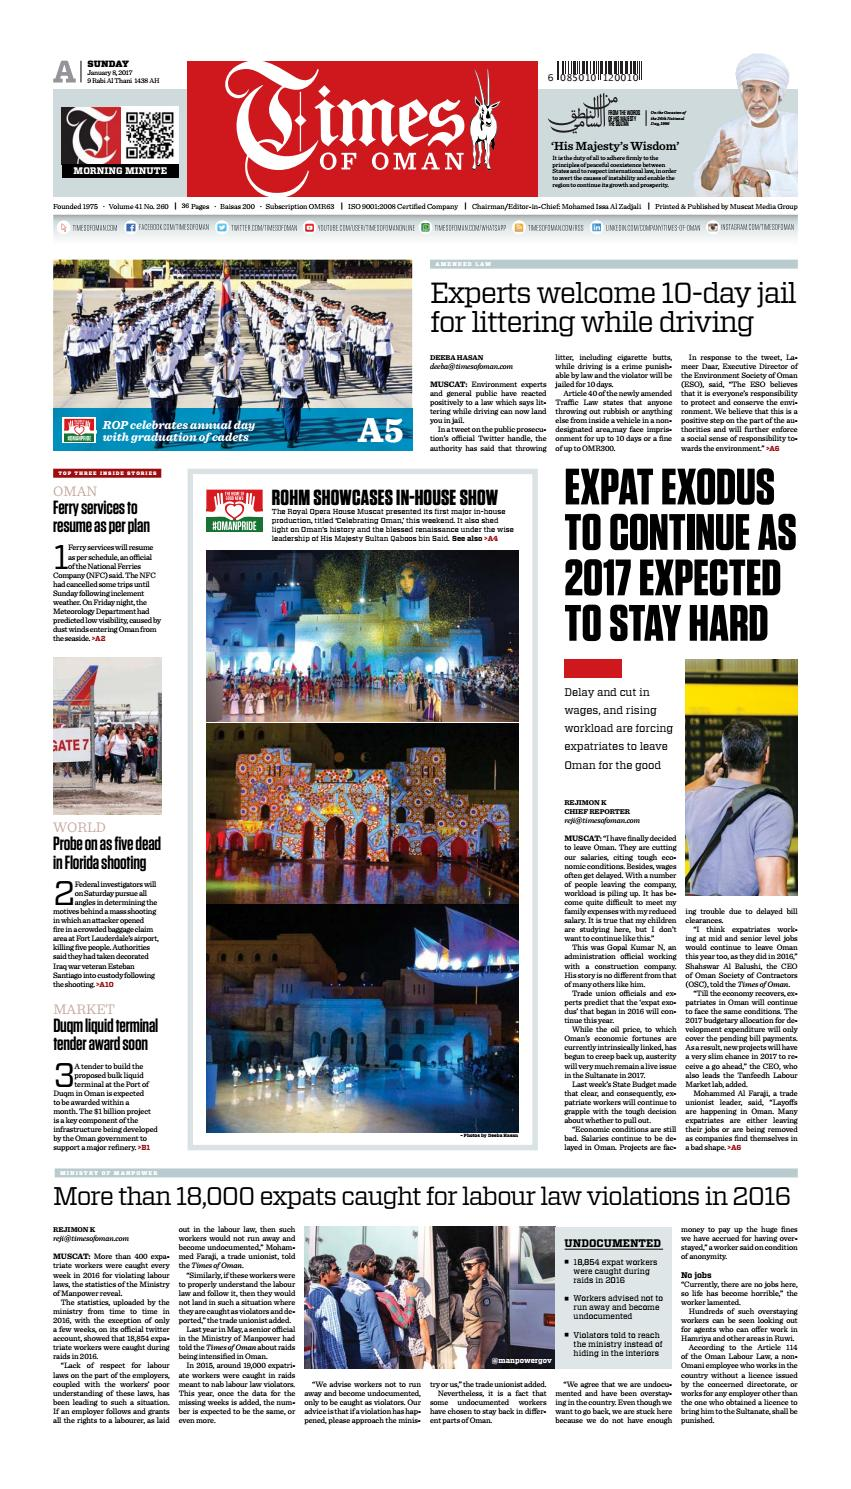 Times of Oman - January 8, 2017 by Muscat Media Group - issuu